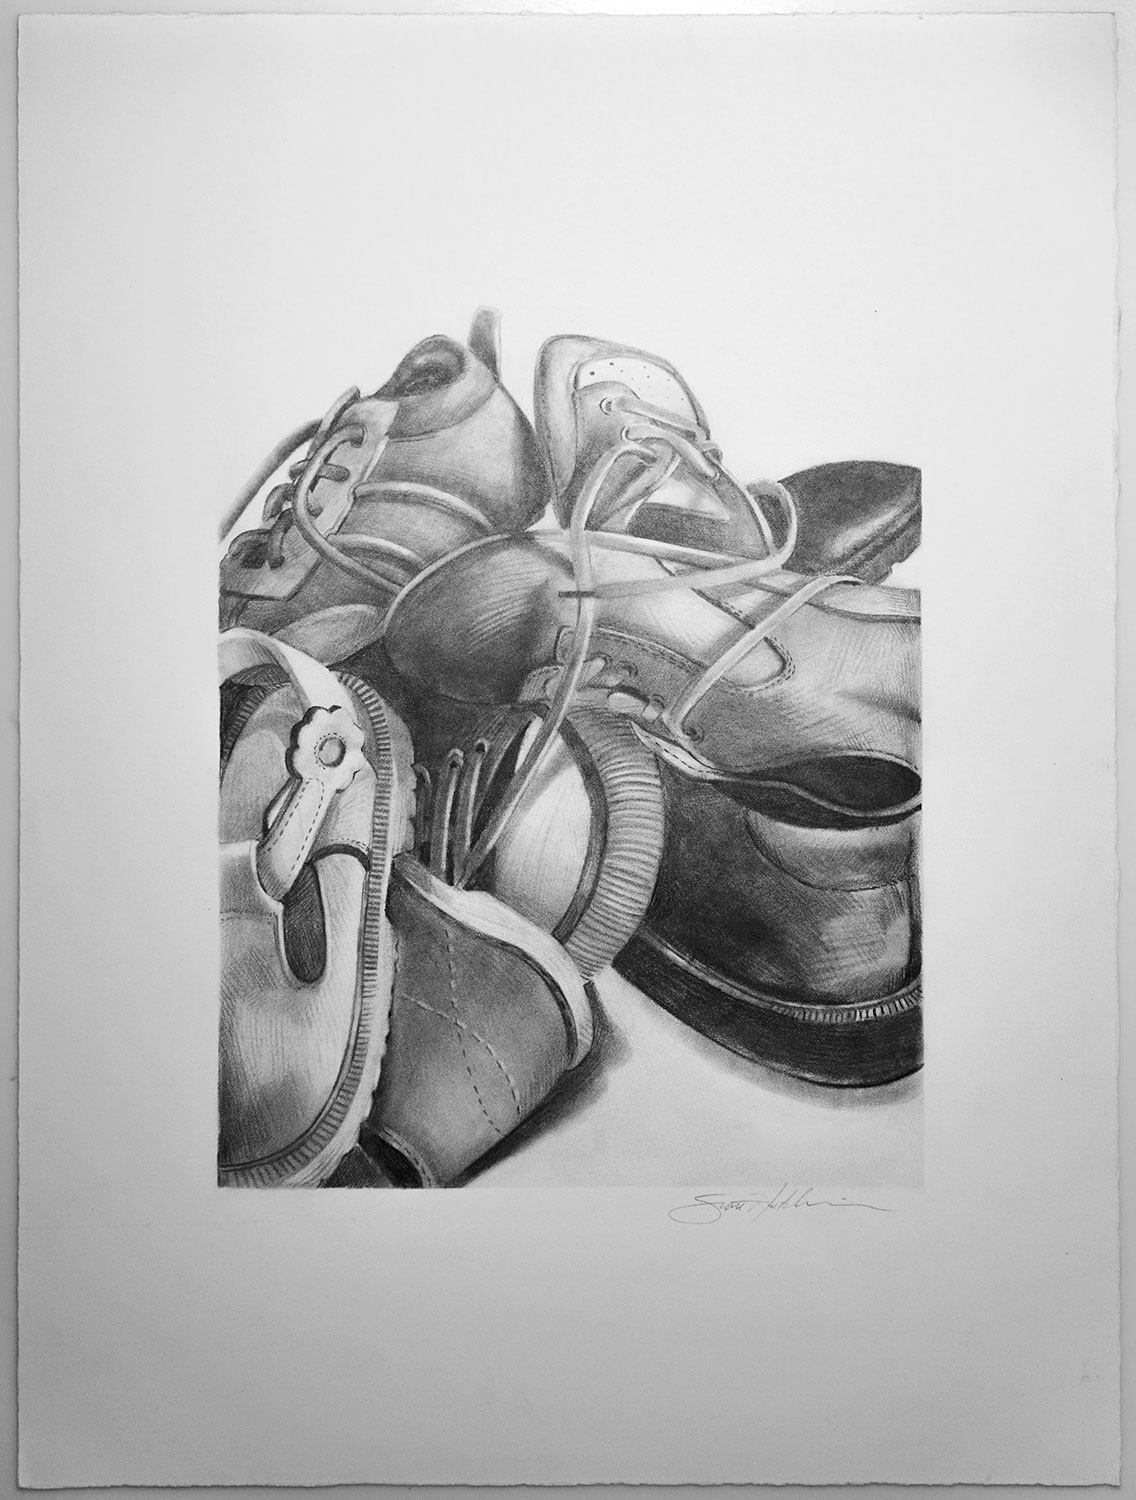 Drawing of many Empty Shoes in a Pile by Scott Hutchison